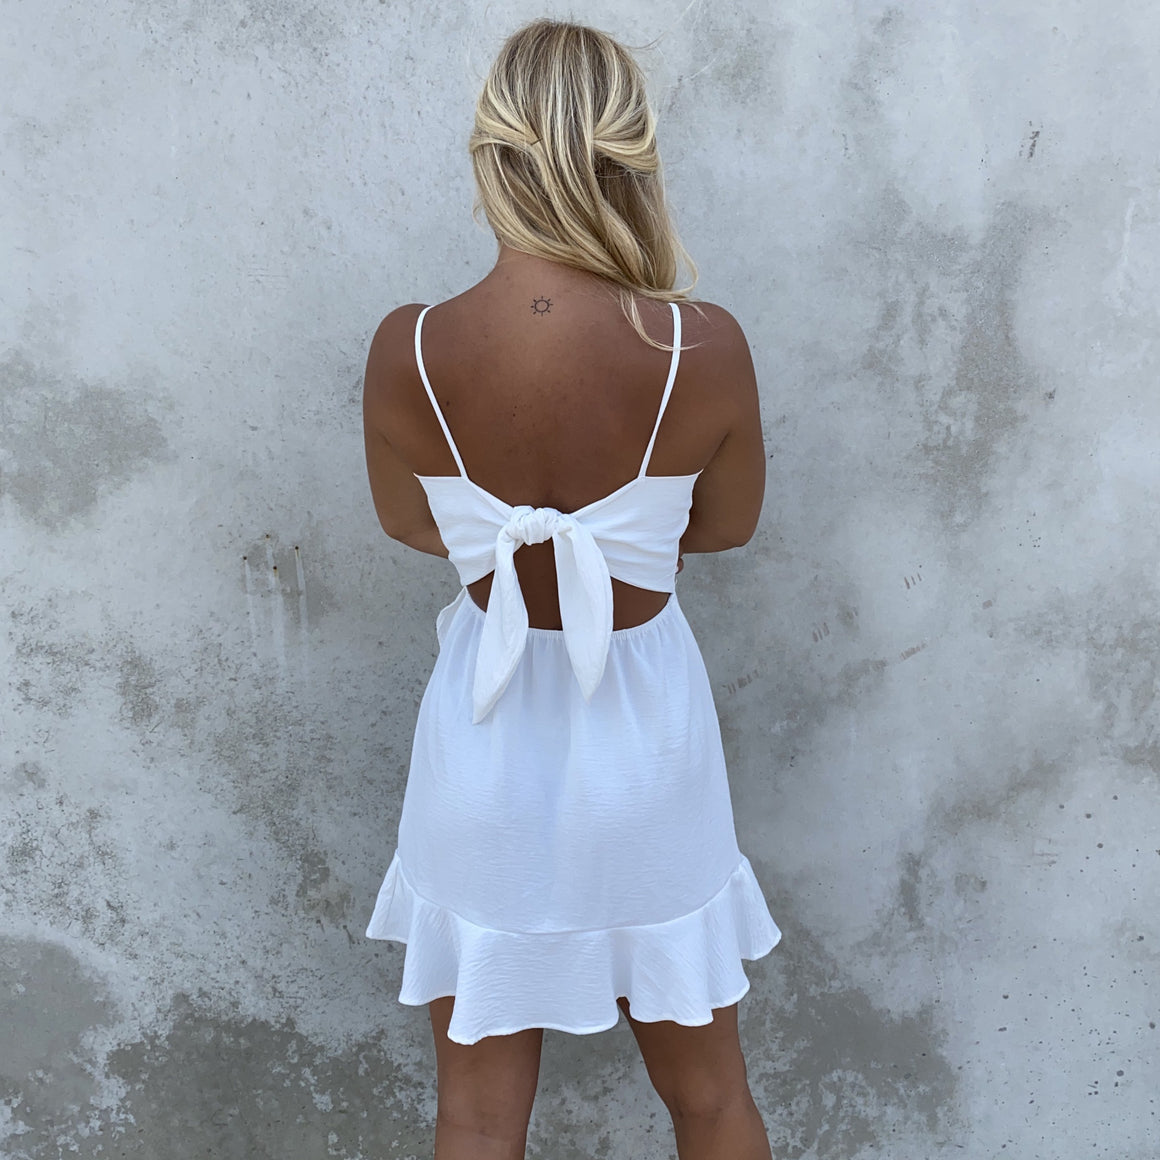 Kiss The Wind Ruffle White Dress - Dainty Hooligan